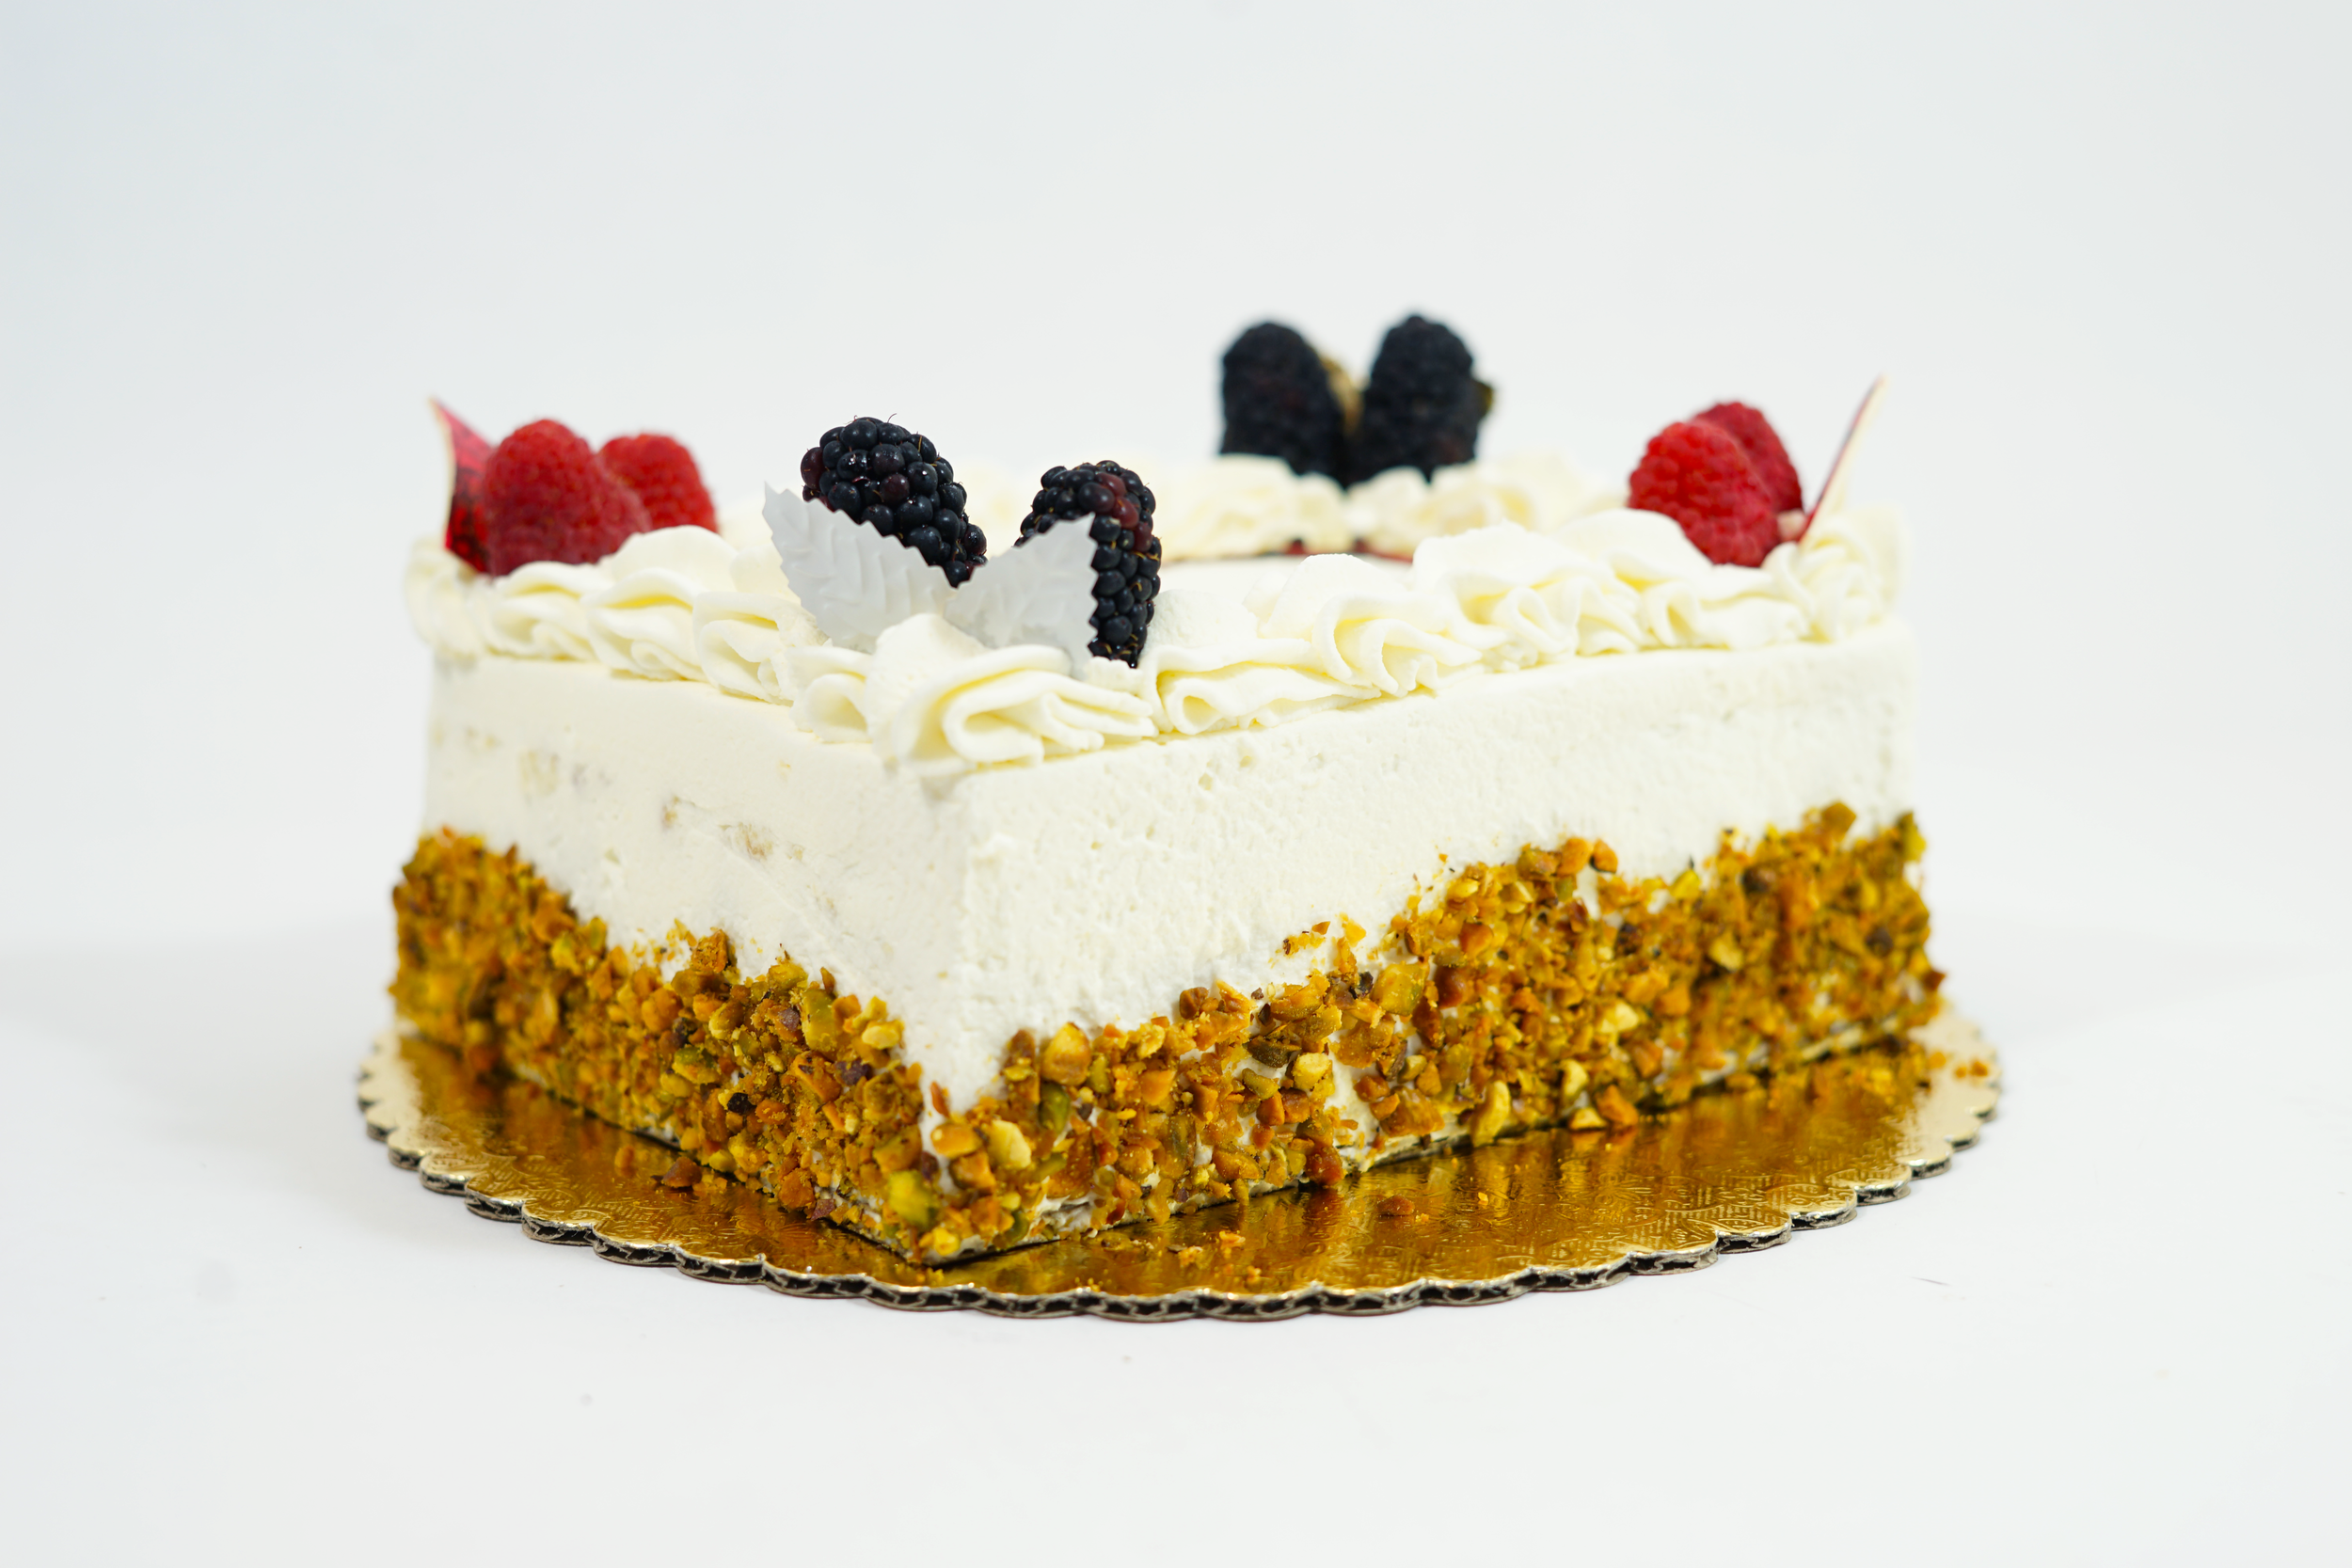 Passion Fruit - Sponge cake with raspberry syrup preserve and passion fruit creme madame filling. Iced with whipped cream and sides covered with roasted unsalted pistachio.